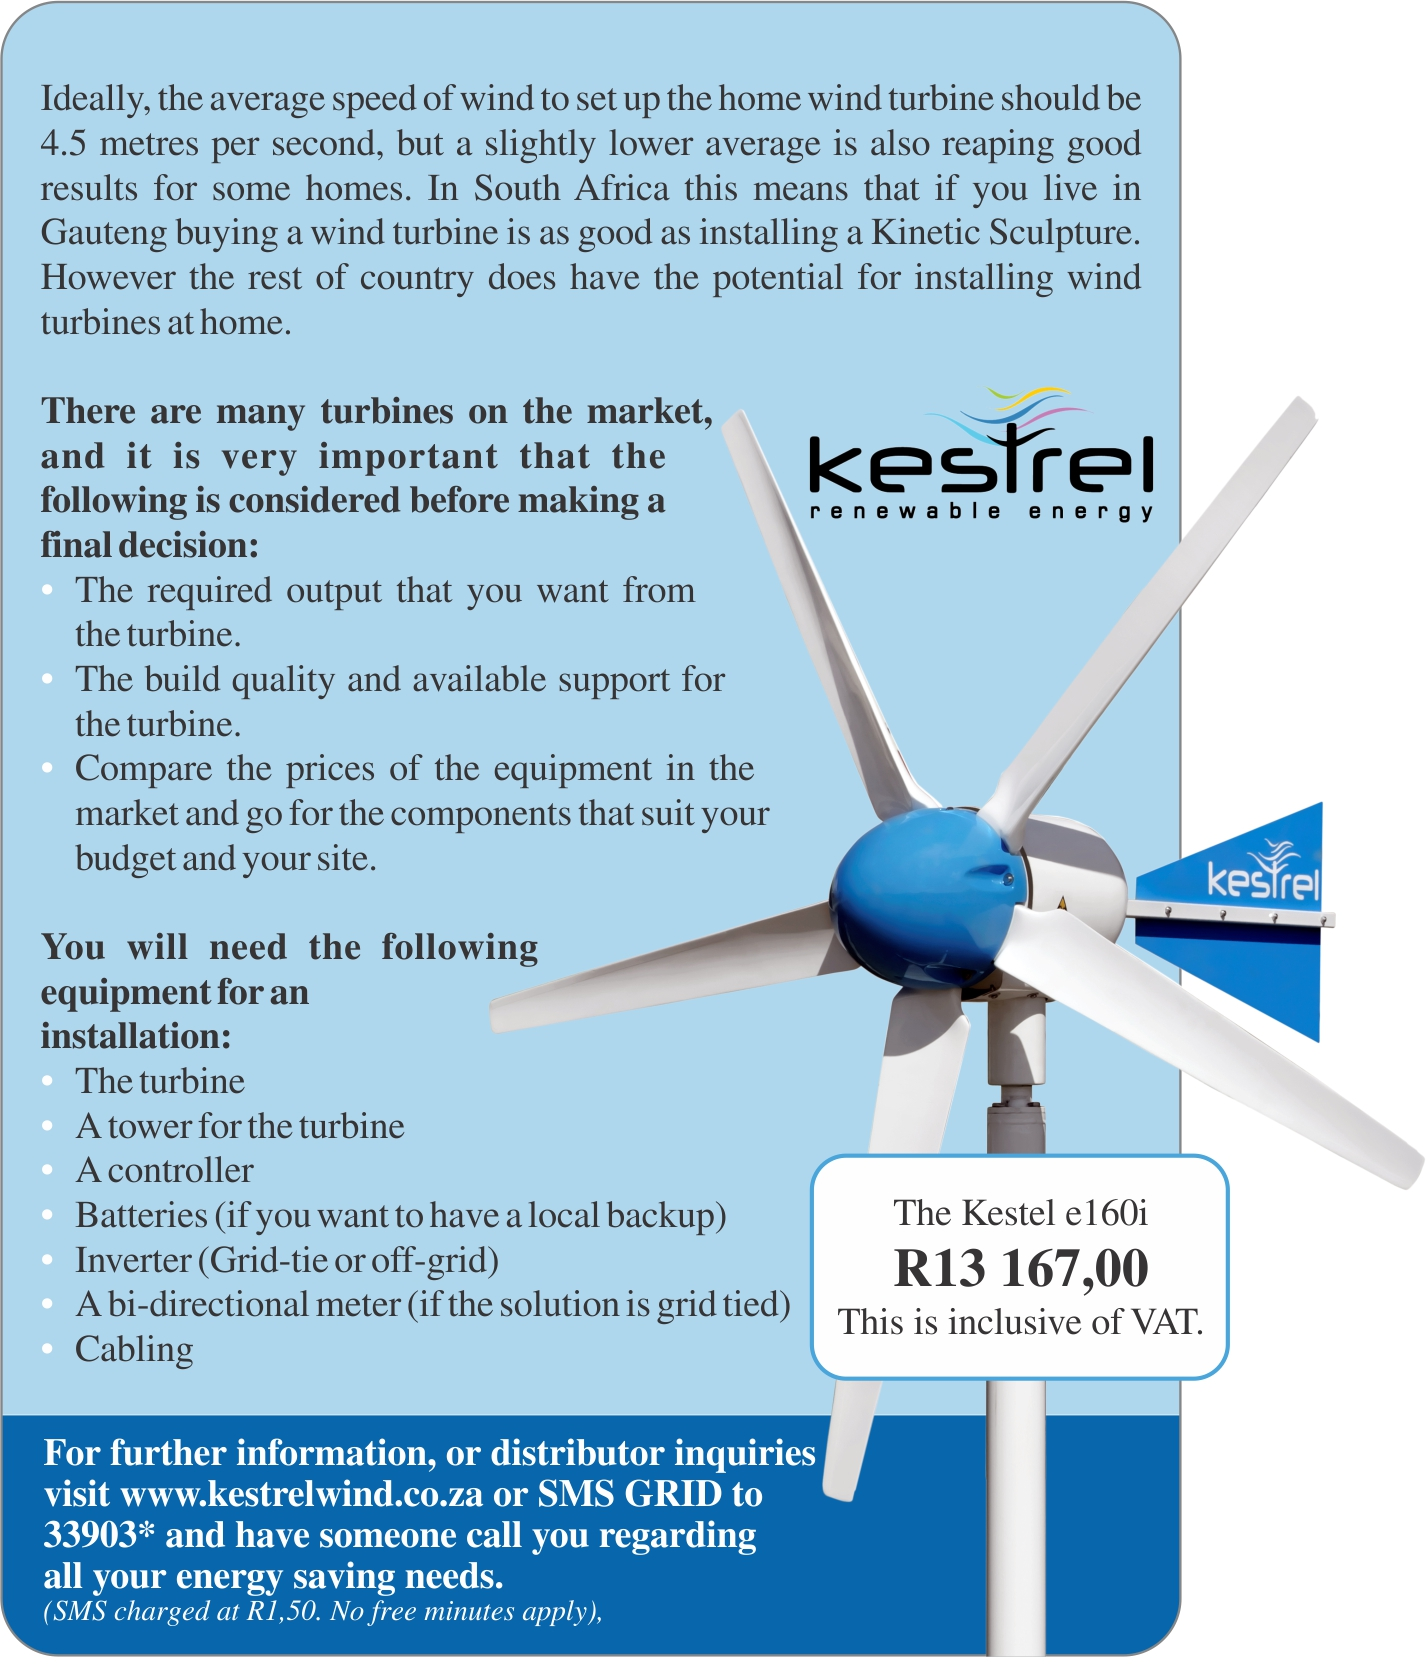 Kestrel Renewable Energy